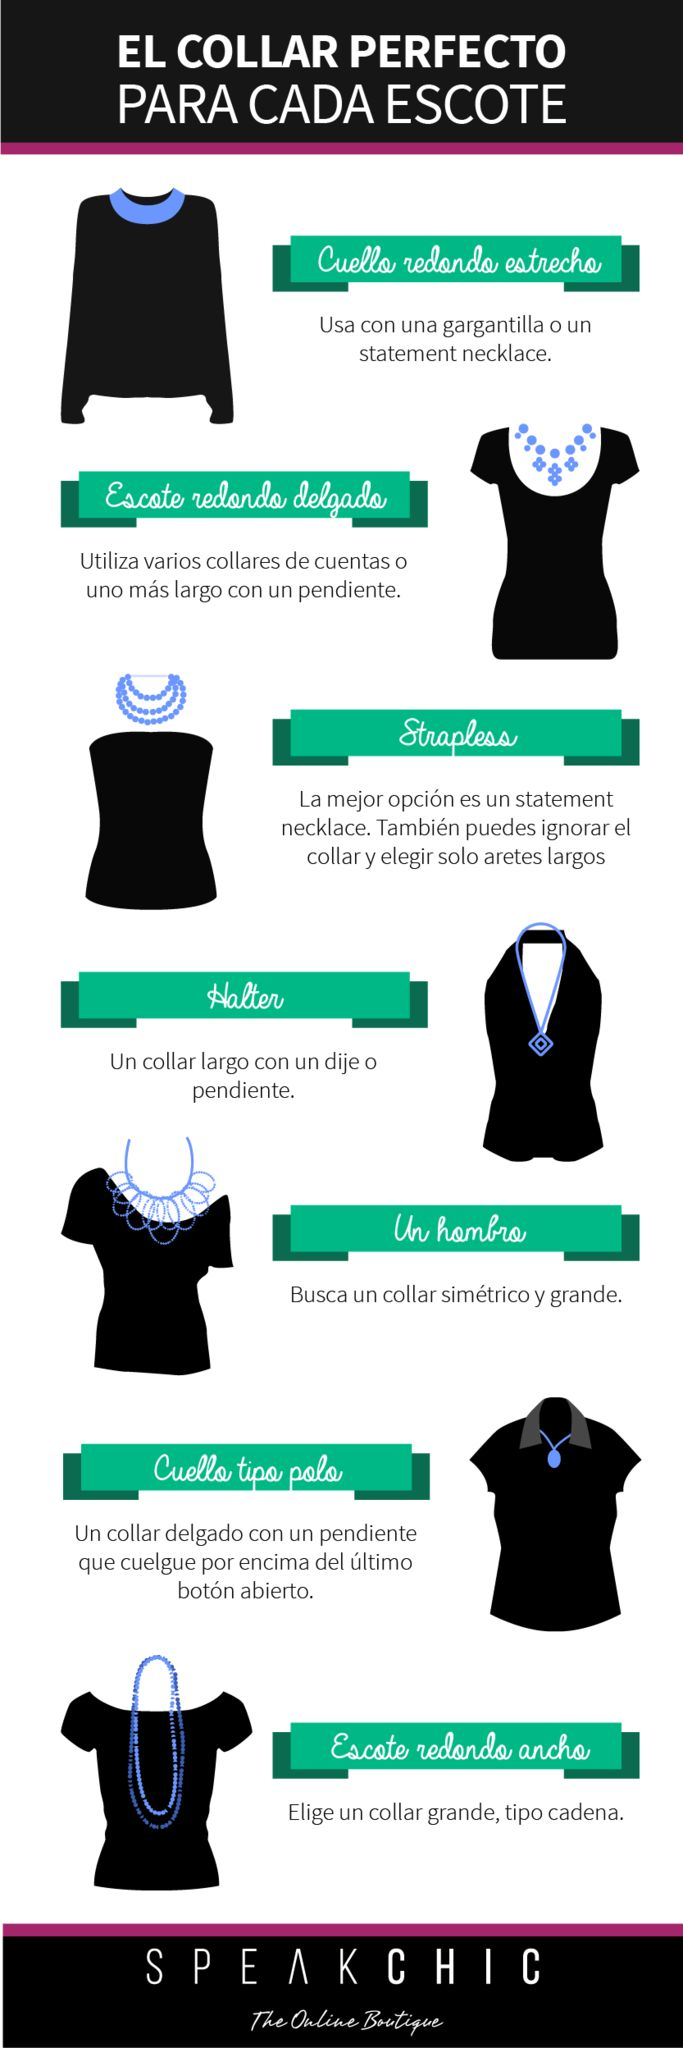 El collar perfecto para cada escote | SPEAK CHIC | Accesorios de Marca Originales